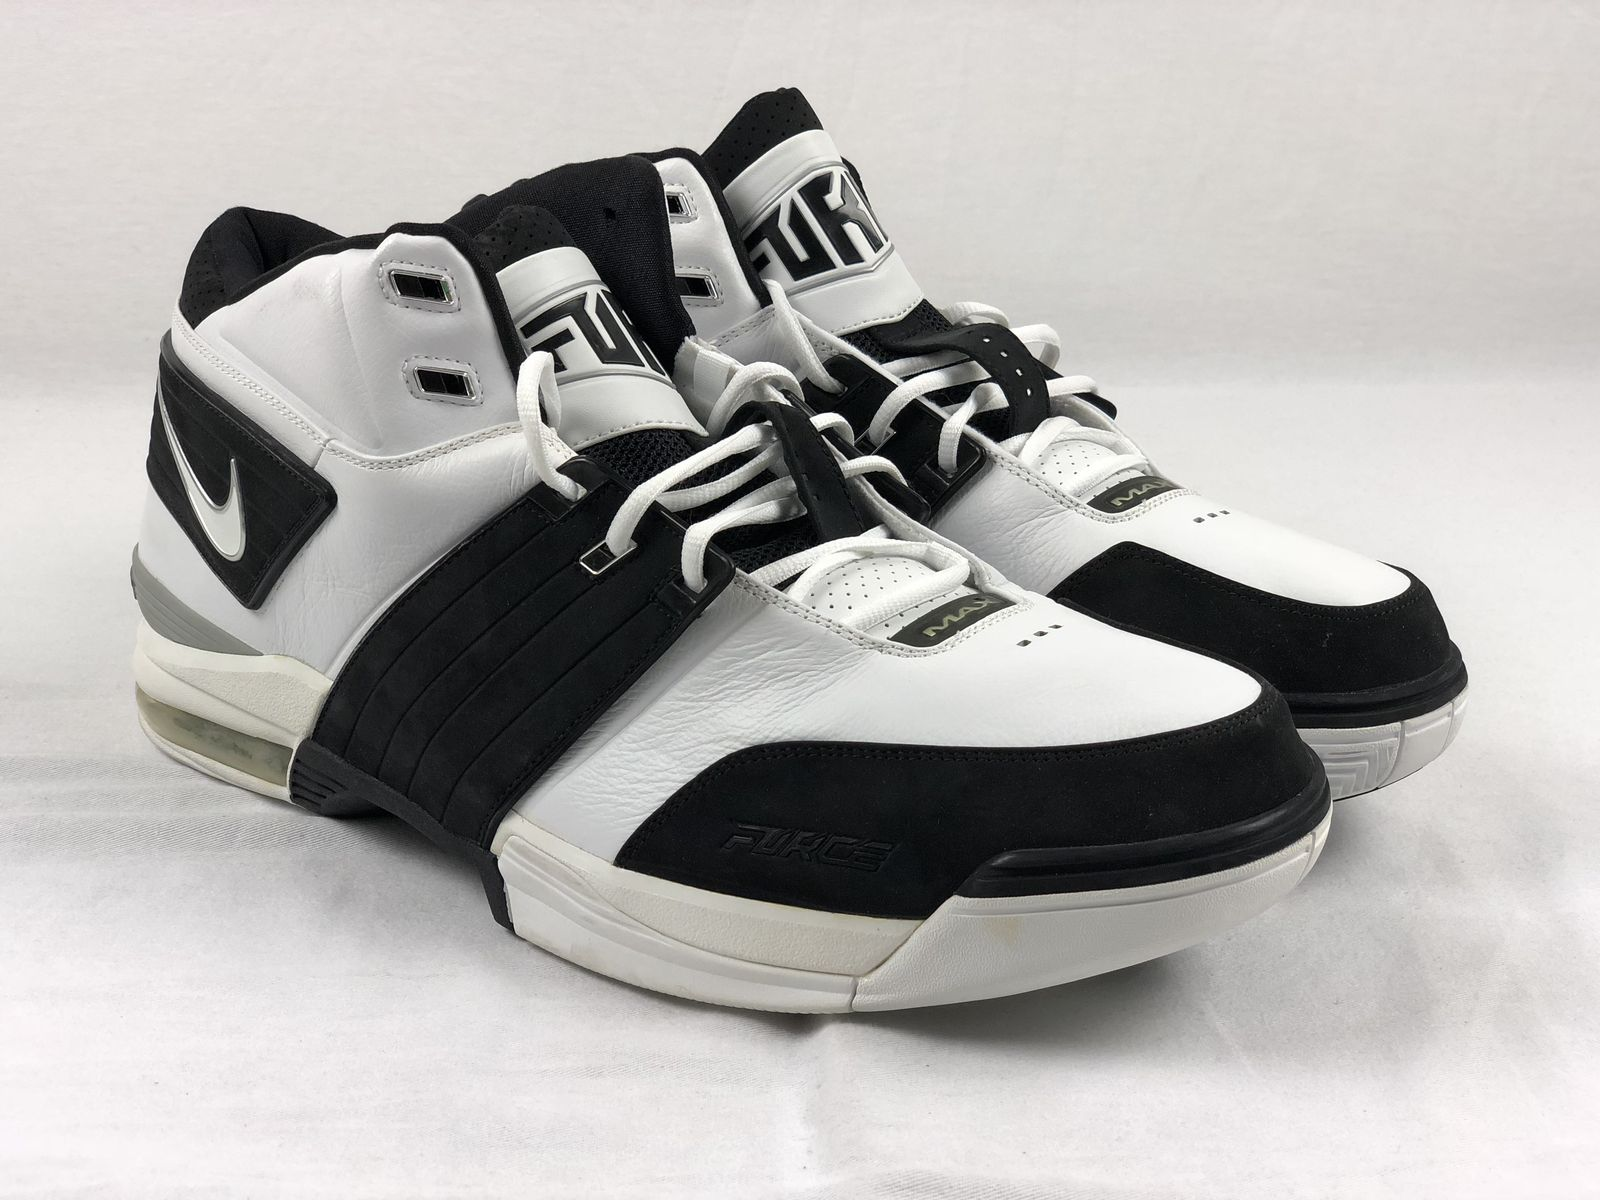 new concept a7a36 cbc4b ... NEW Nike Air Force Max - Black White Basketball Shoes (Men s 20) ...